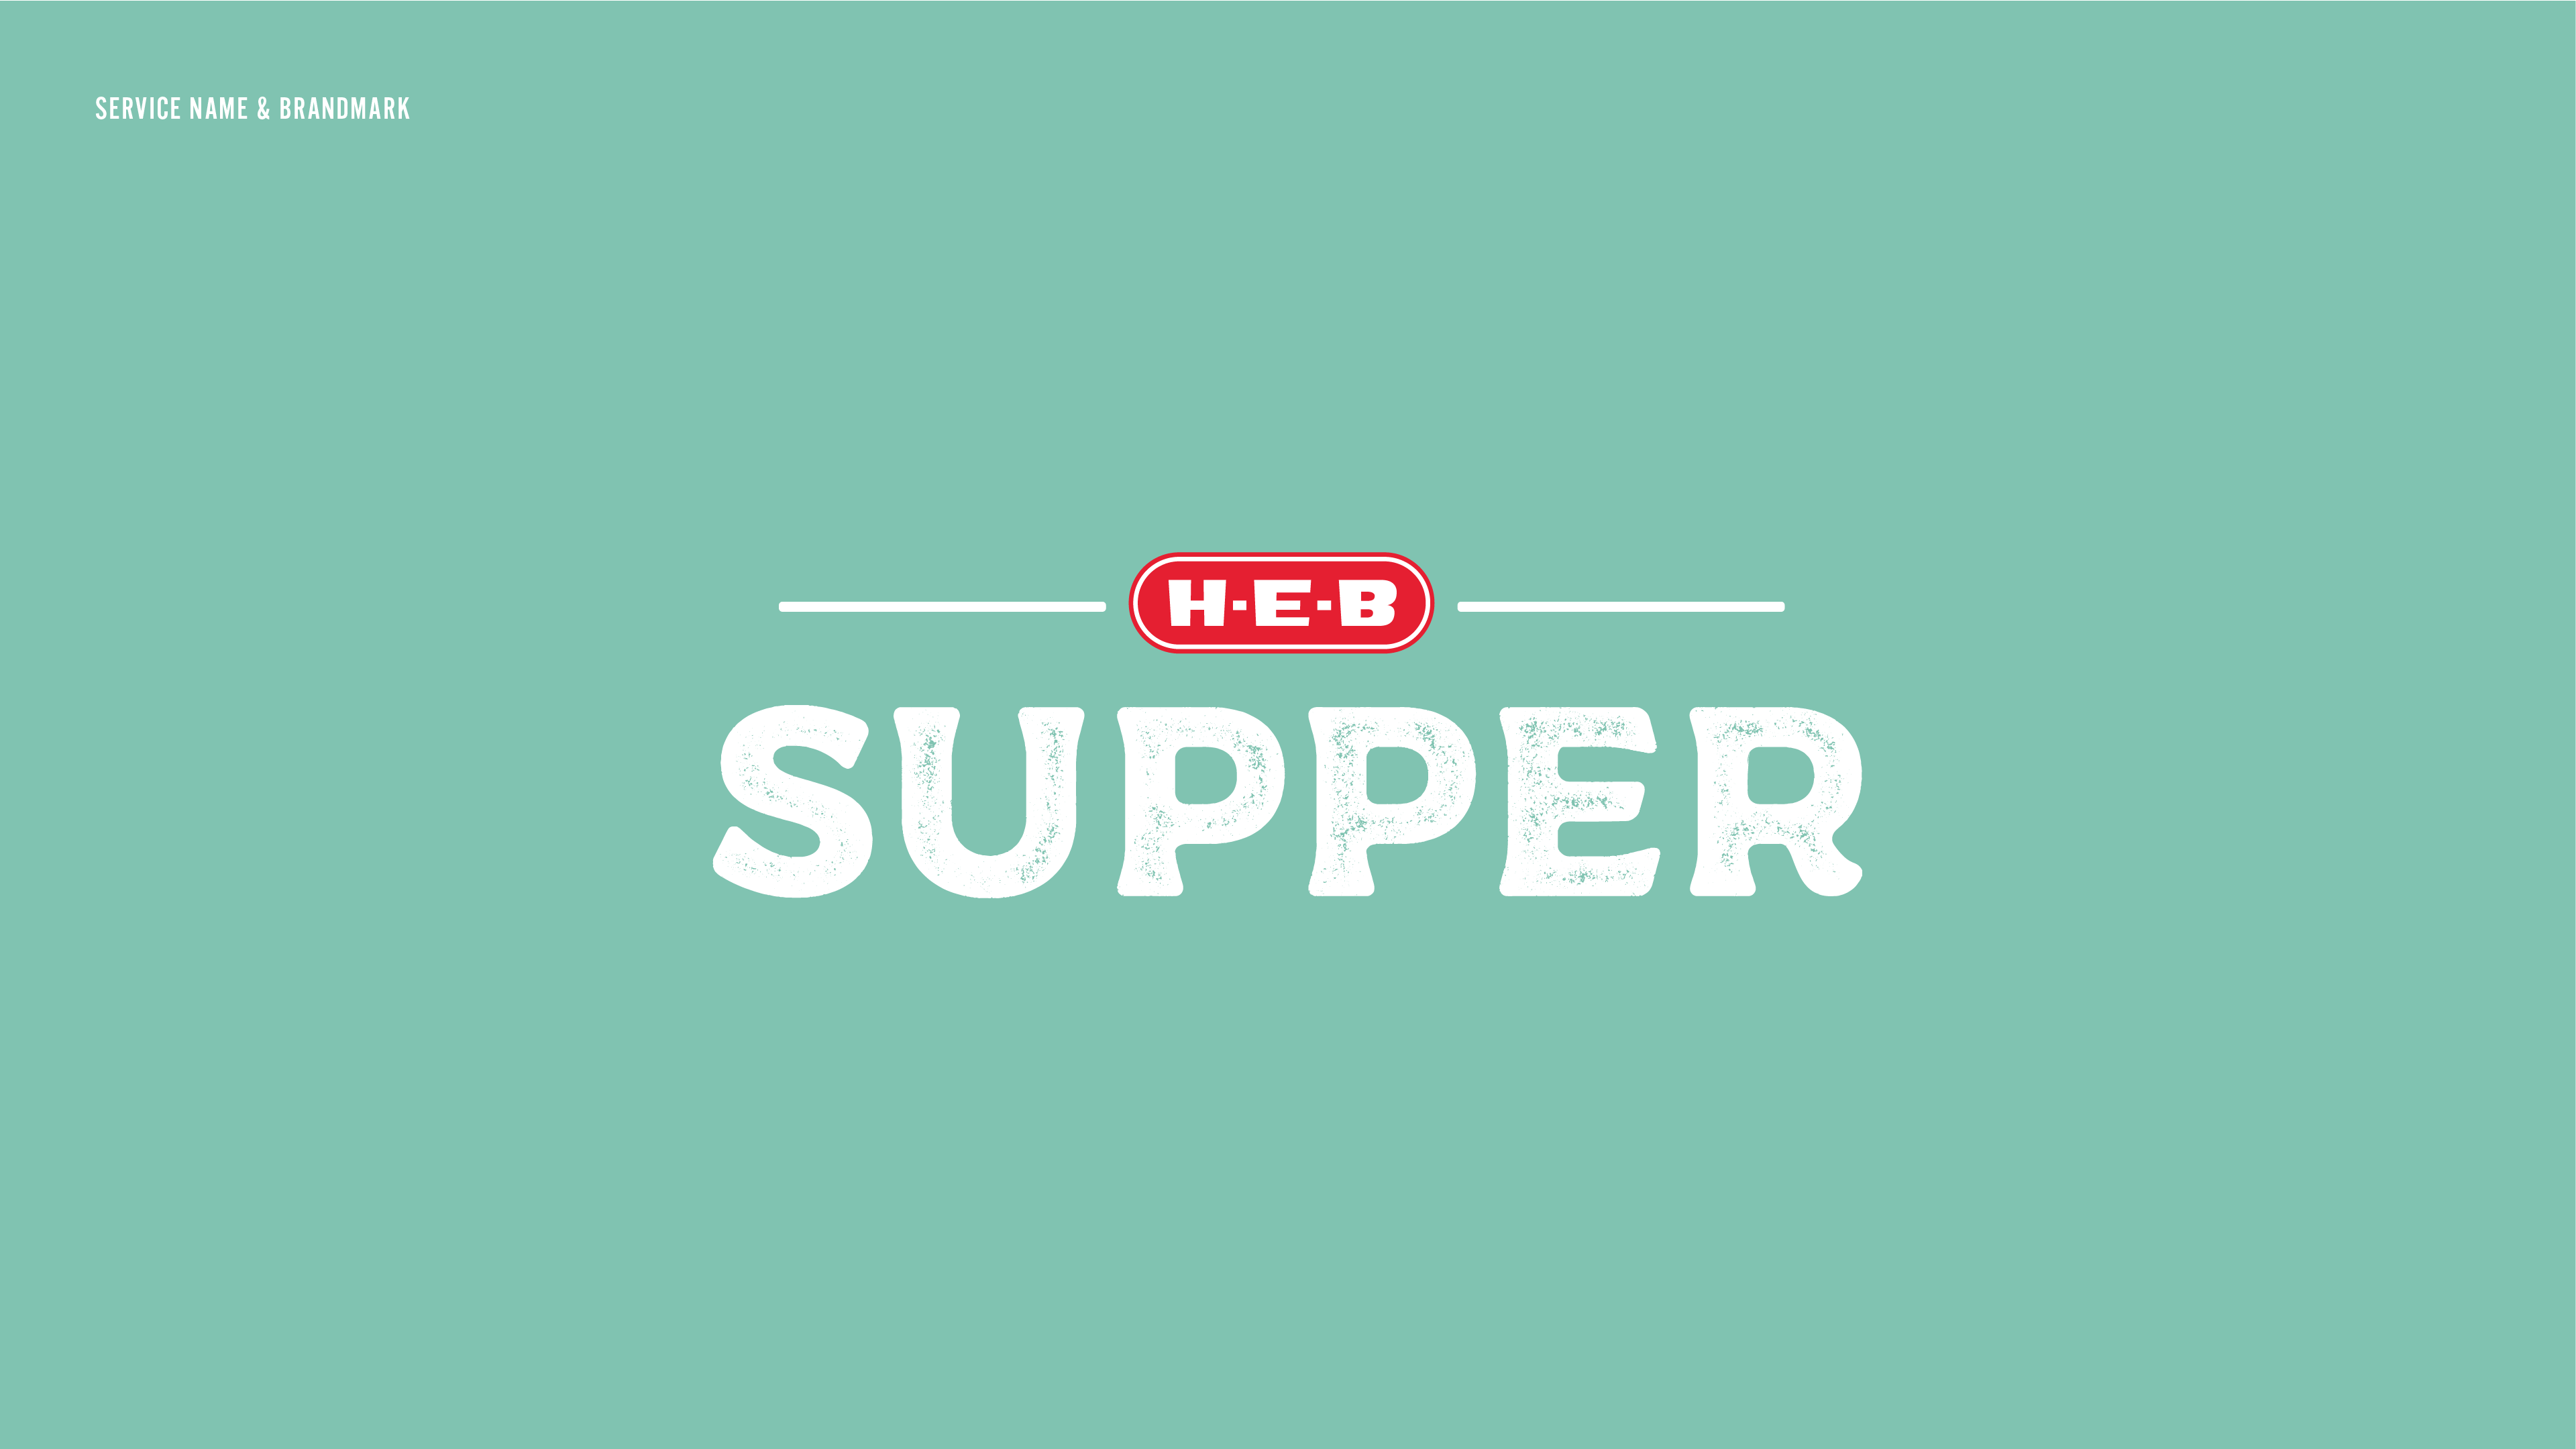 heb_supper_2.0_real_tealArtboard-1-copy-5@2x